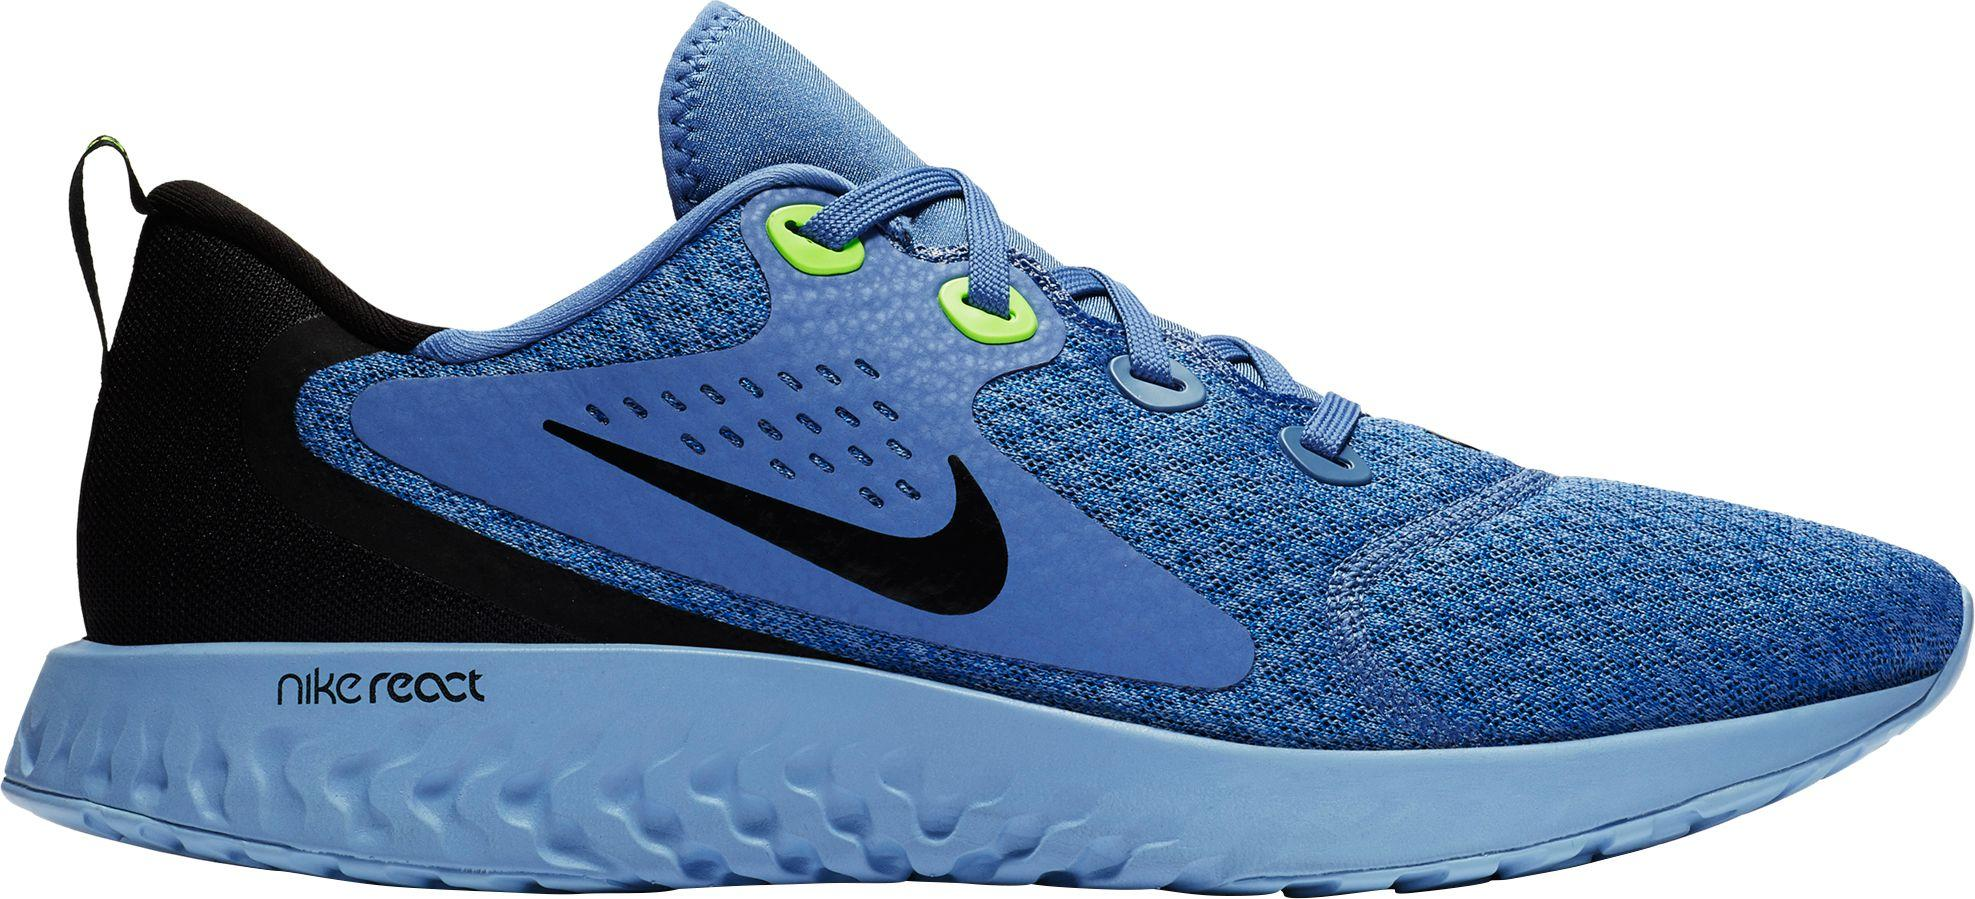 374297725dc Lyst - Nike Legend React Running Shoes in Blue for Men